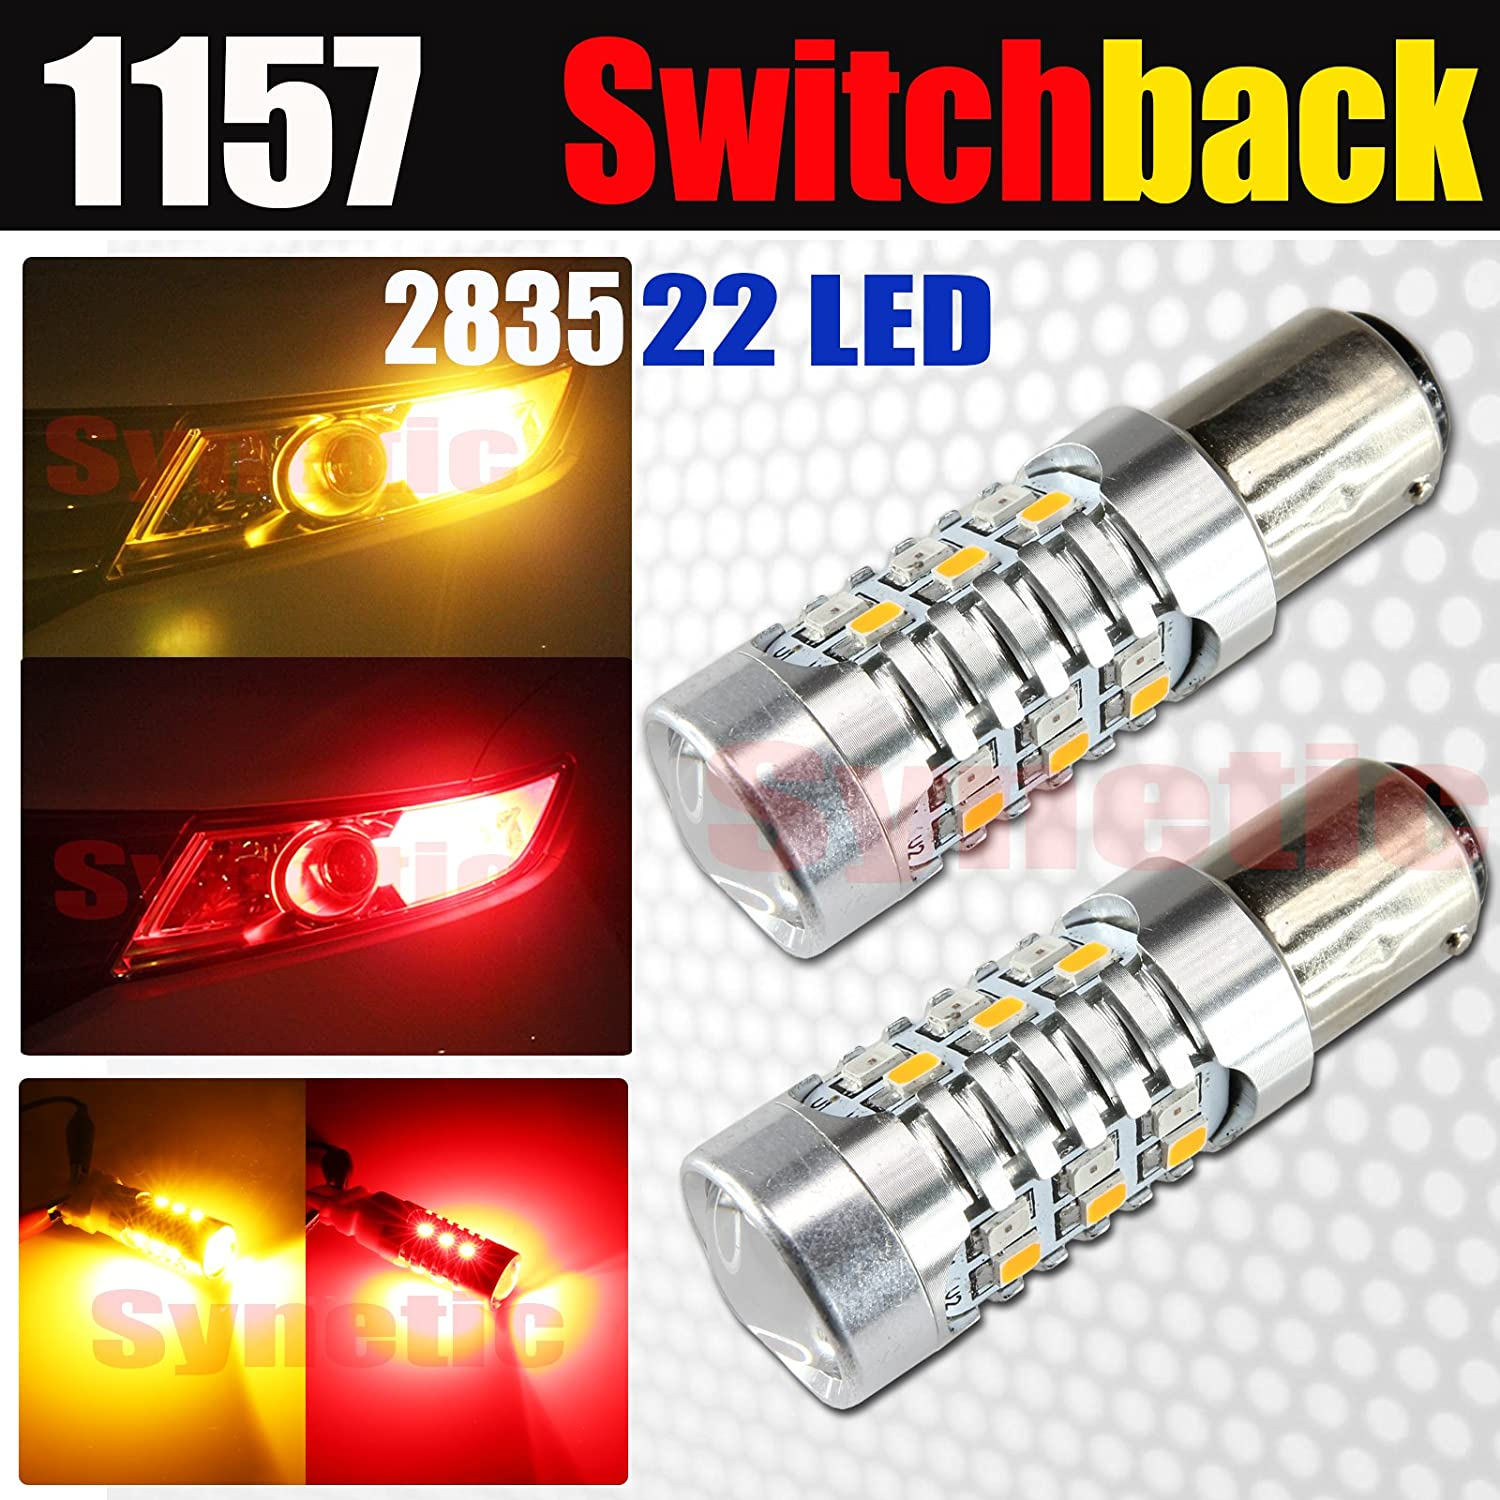 1157, Red//Yellow Syneticusa 3157//7443//1157 High Power Dual Color Switchback 2835 Chip Red//Yellow 22-LED Turn Signal Light Bulbs